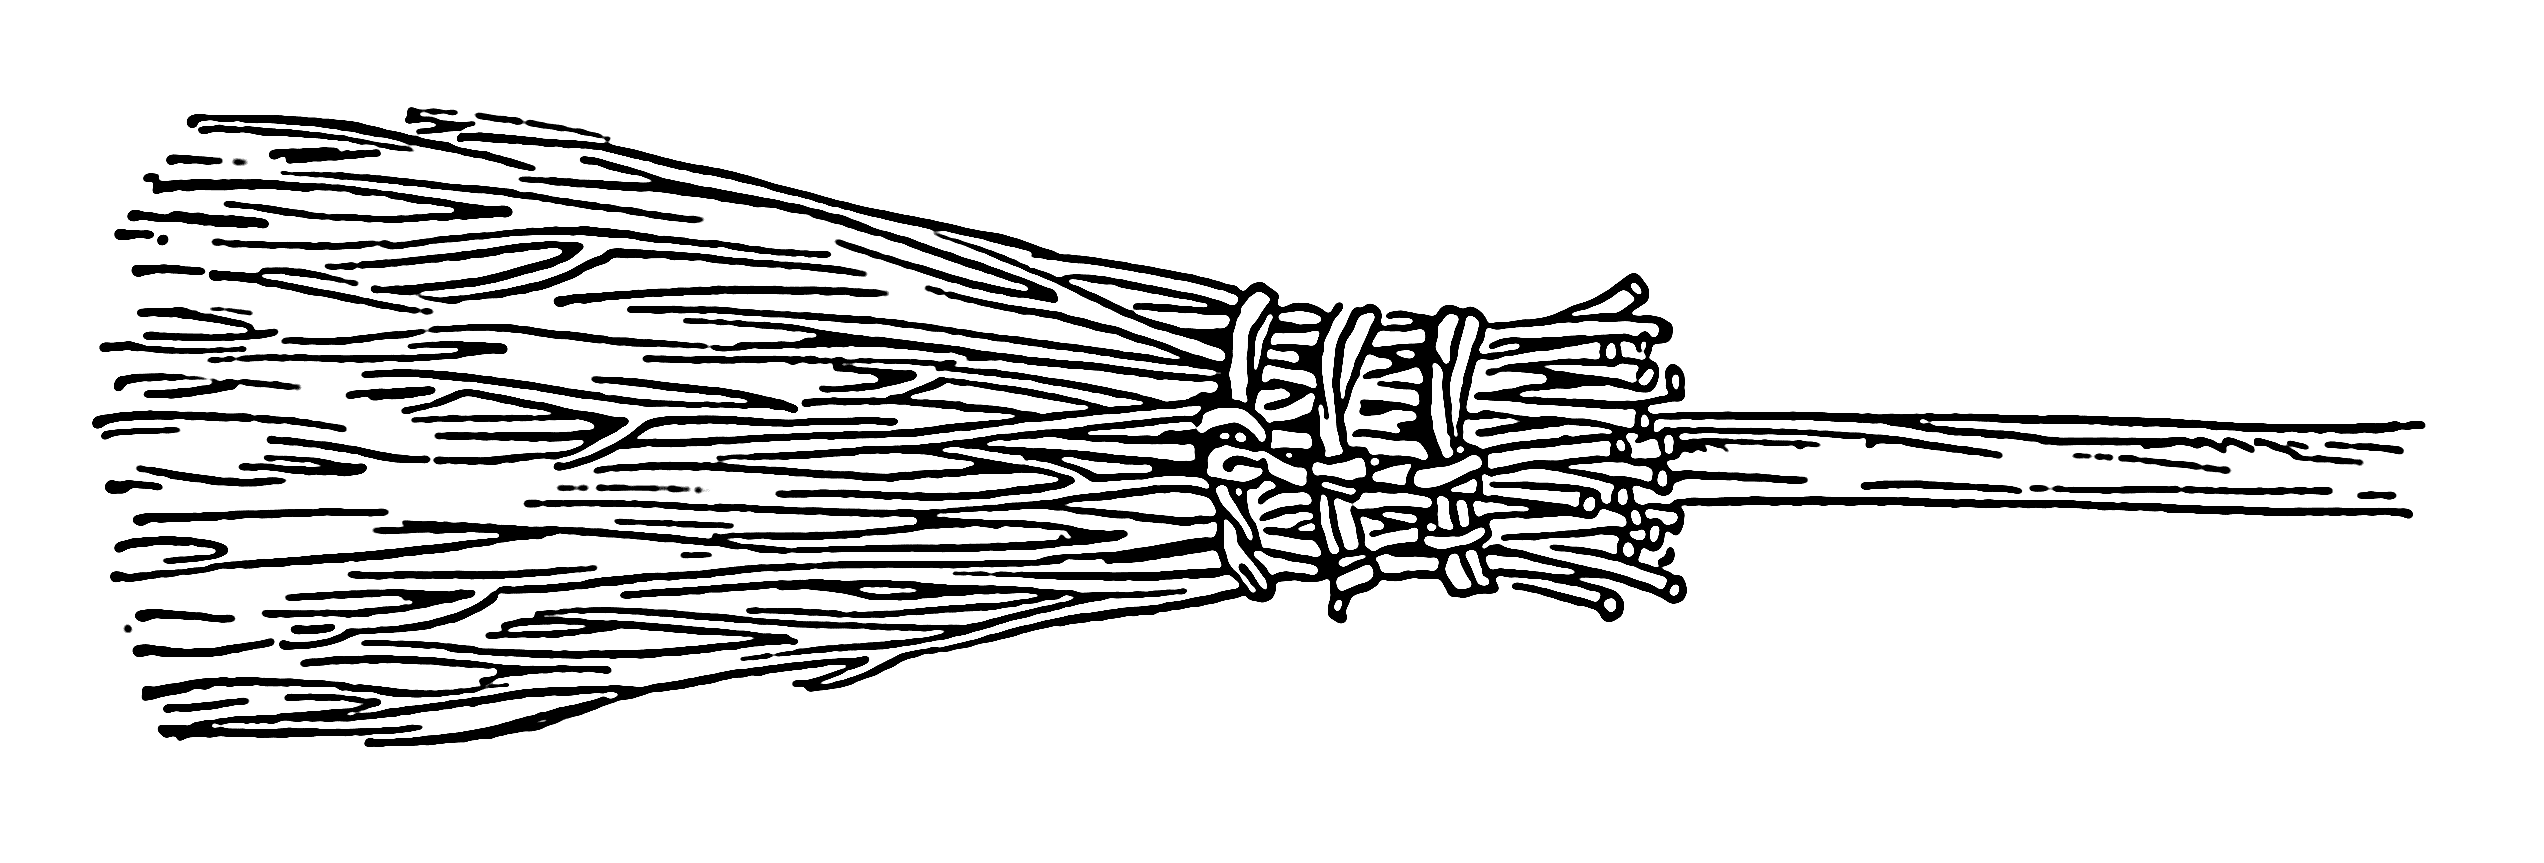 Broom Drawing Png - File:Besom (PSF).png - Wikimedia Commons